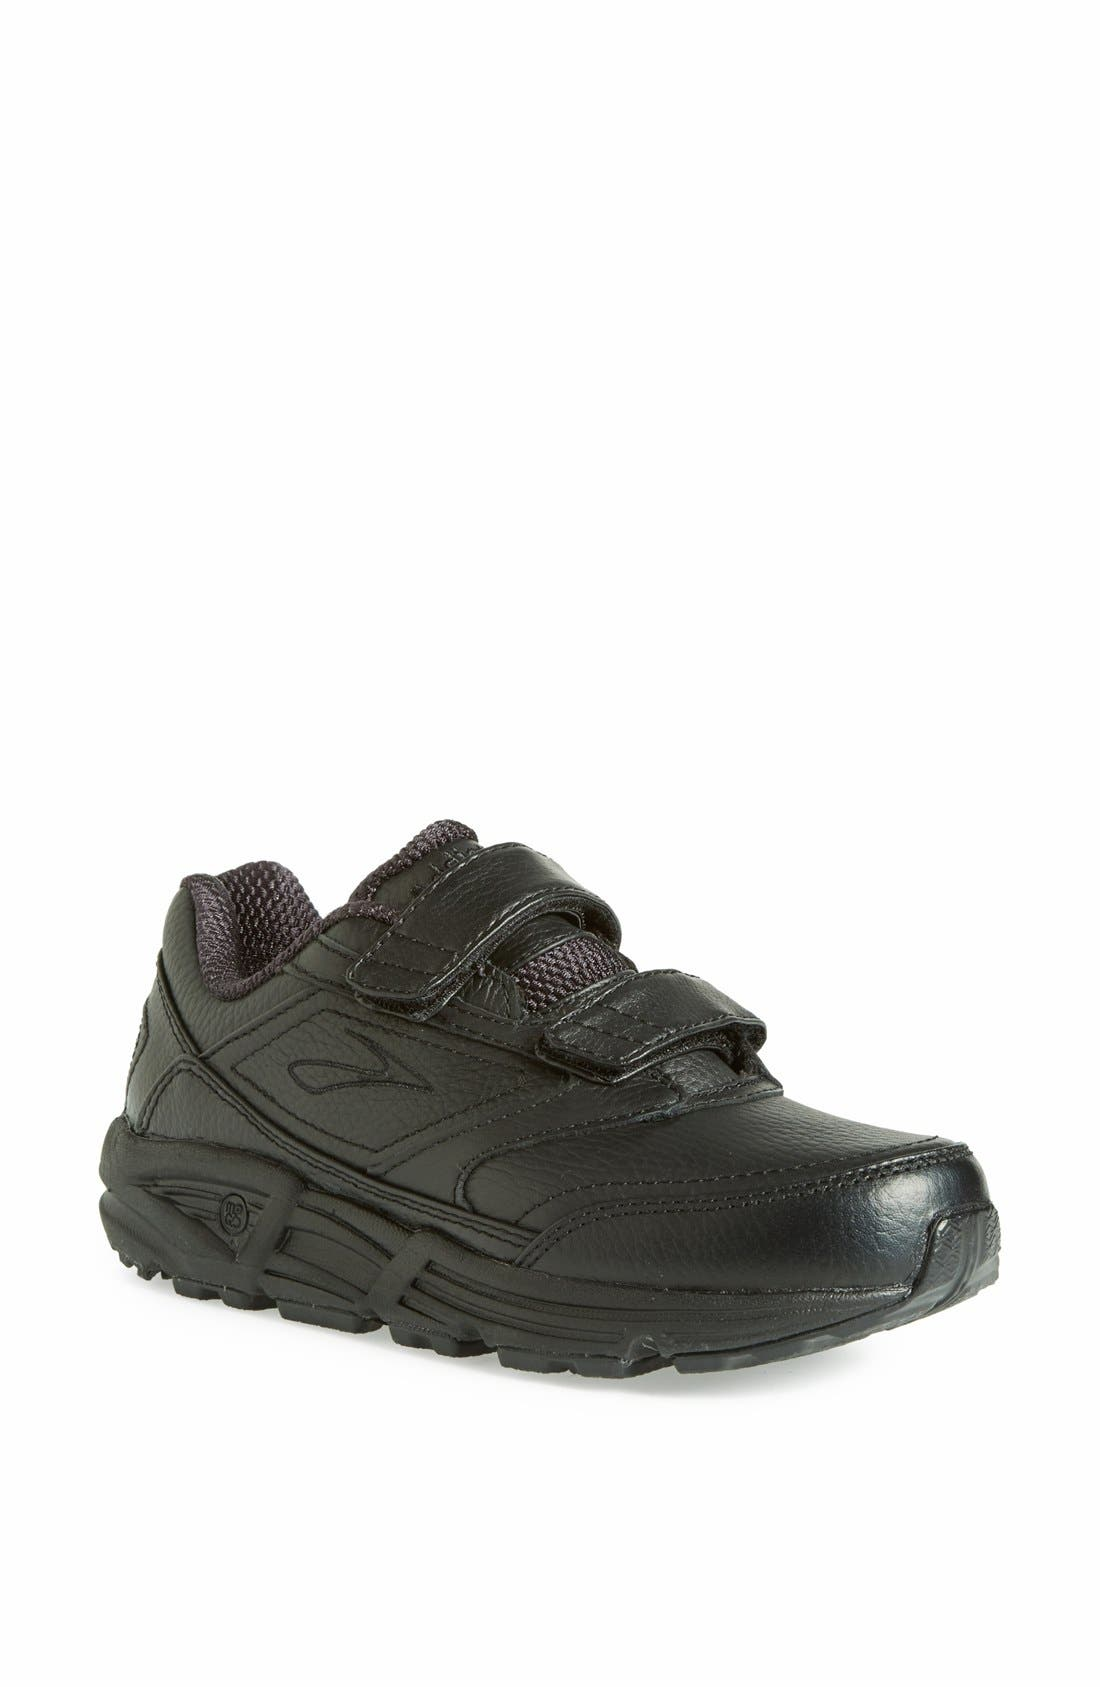 Main Image - Brooks 'Addiction' Walking Shoe (Women)